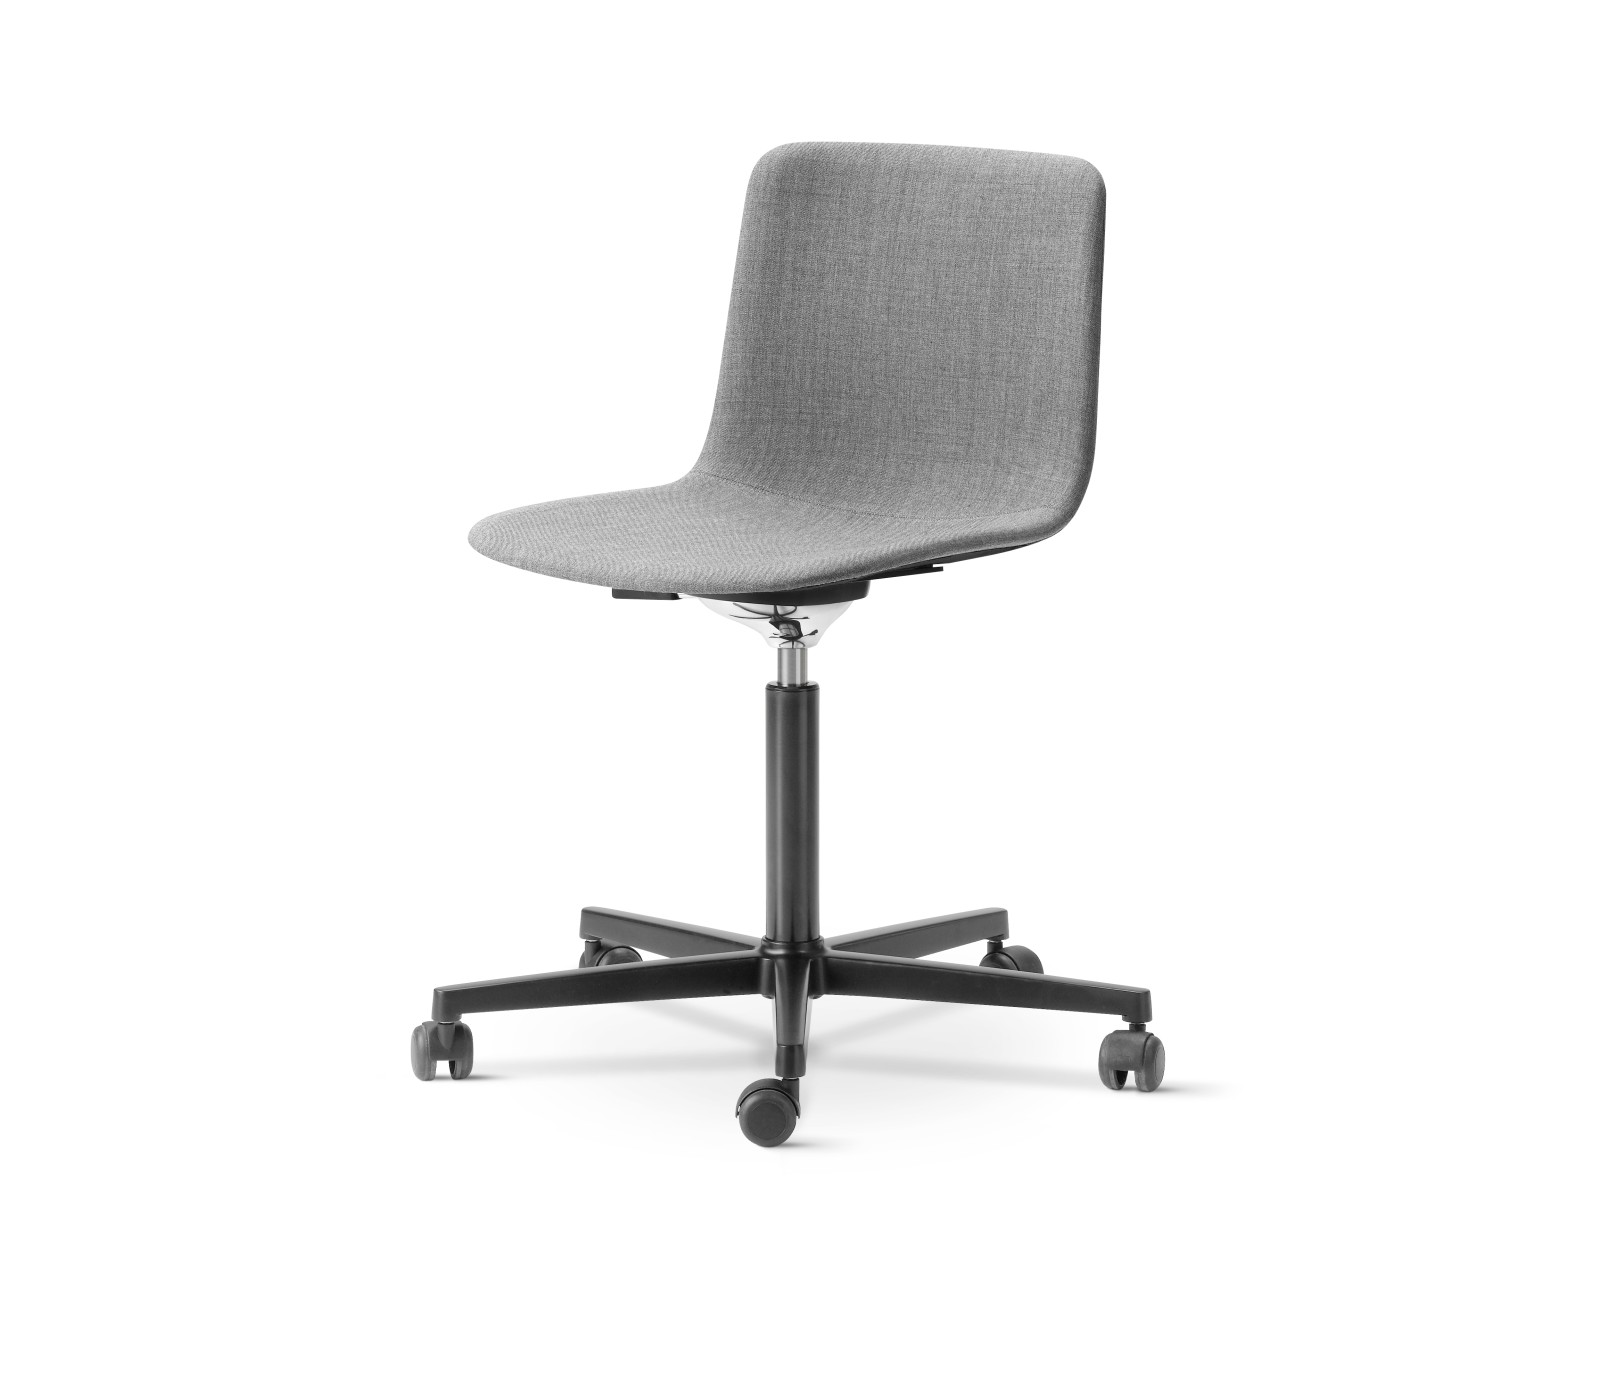 Pato Office Chair Fully Upholstered Chrome Steel, Remix 2 143